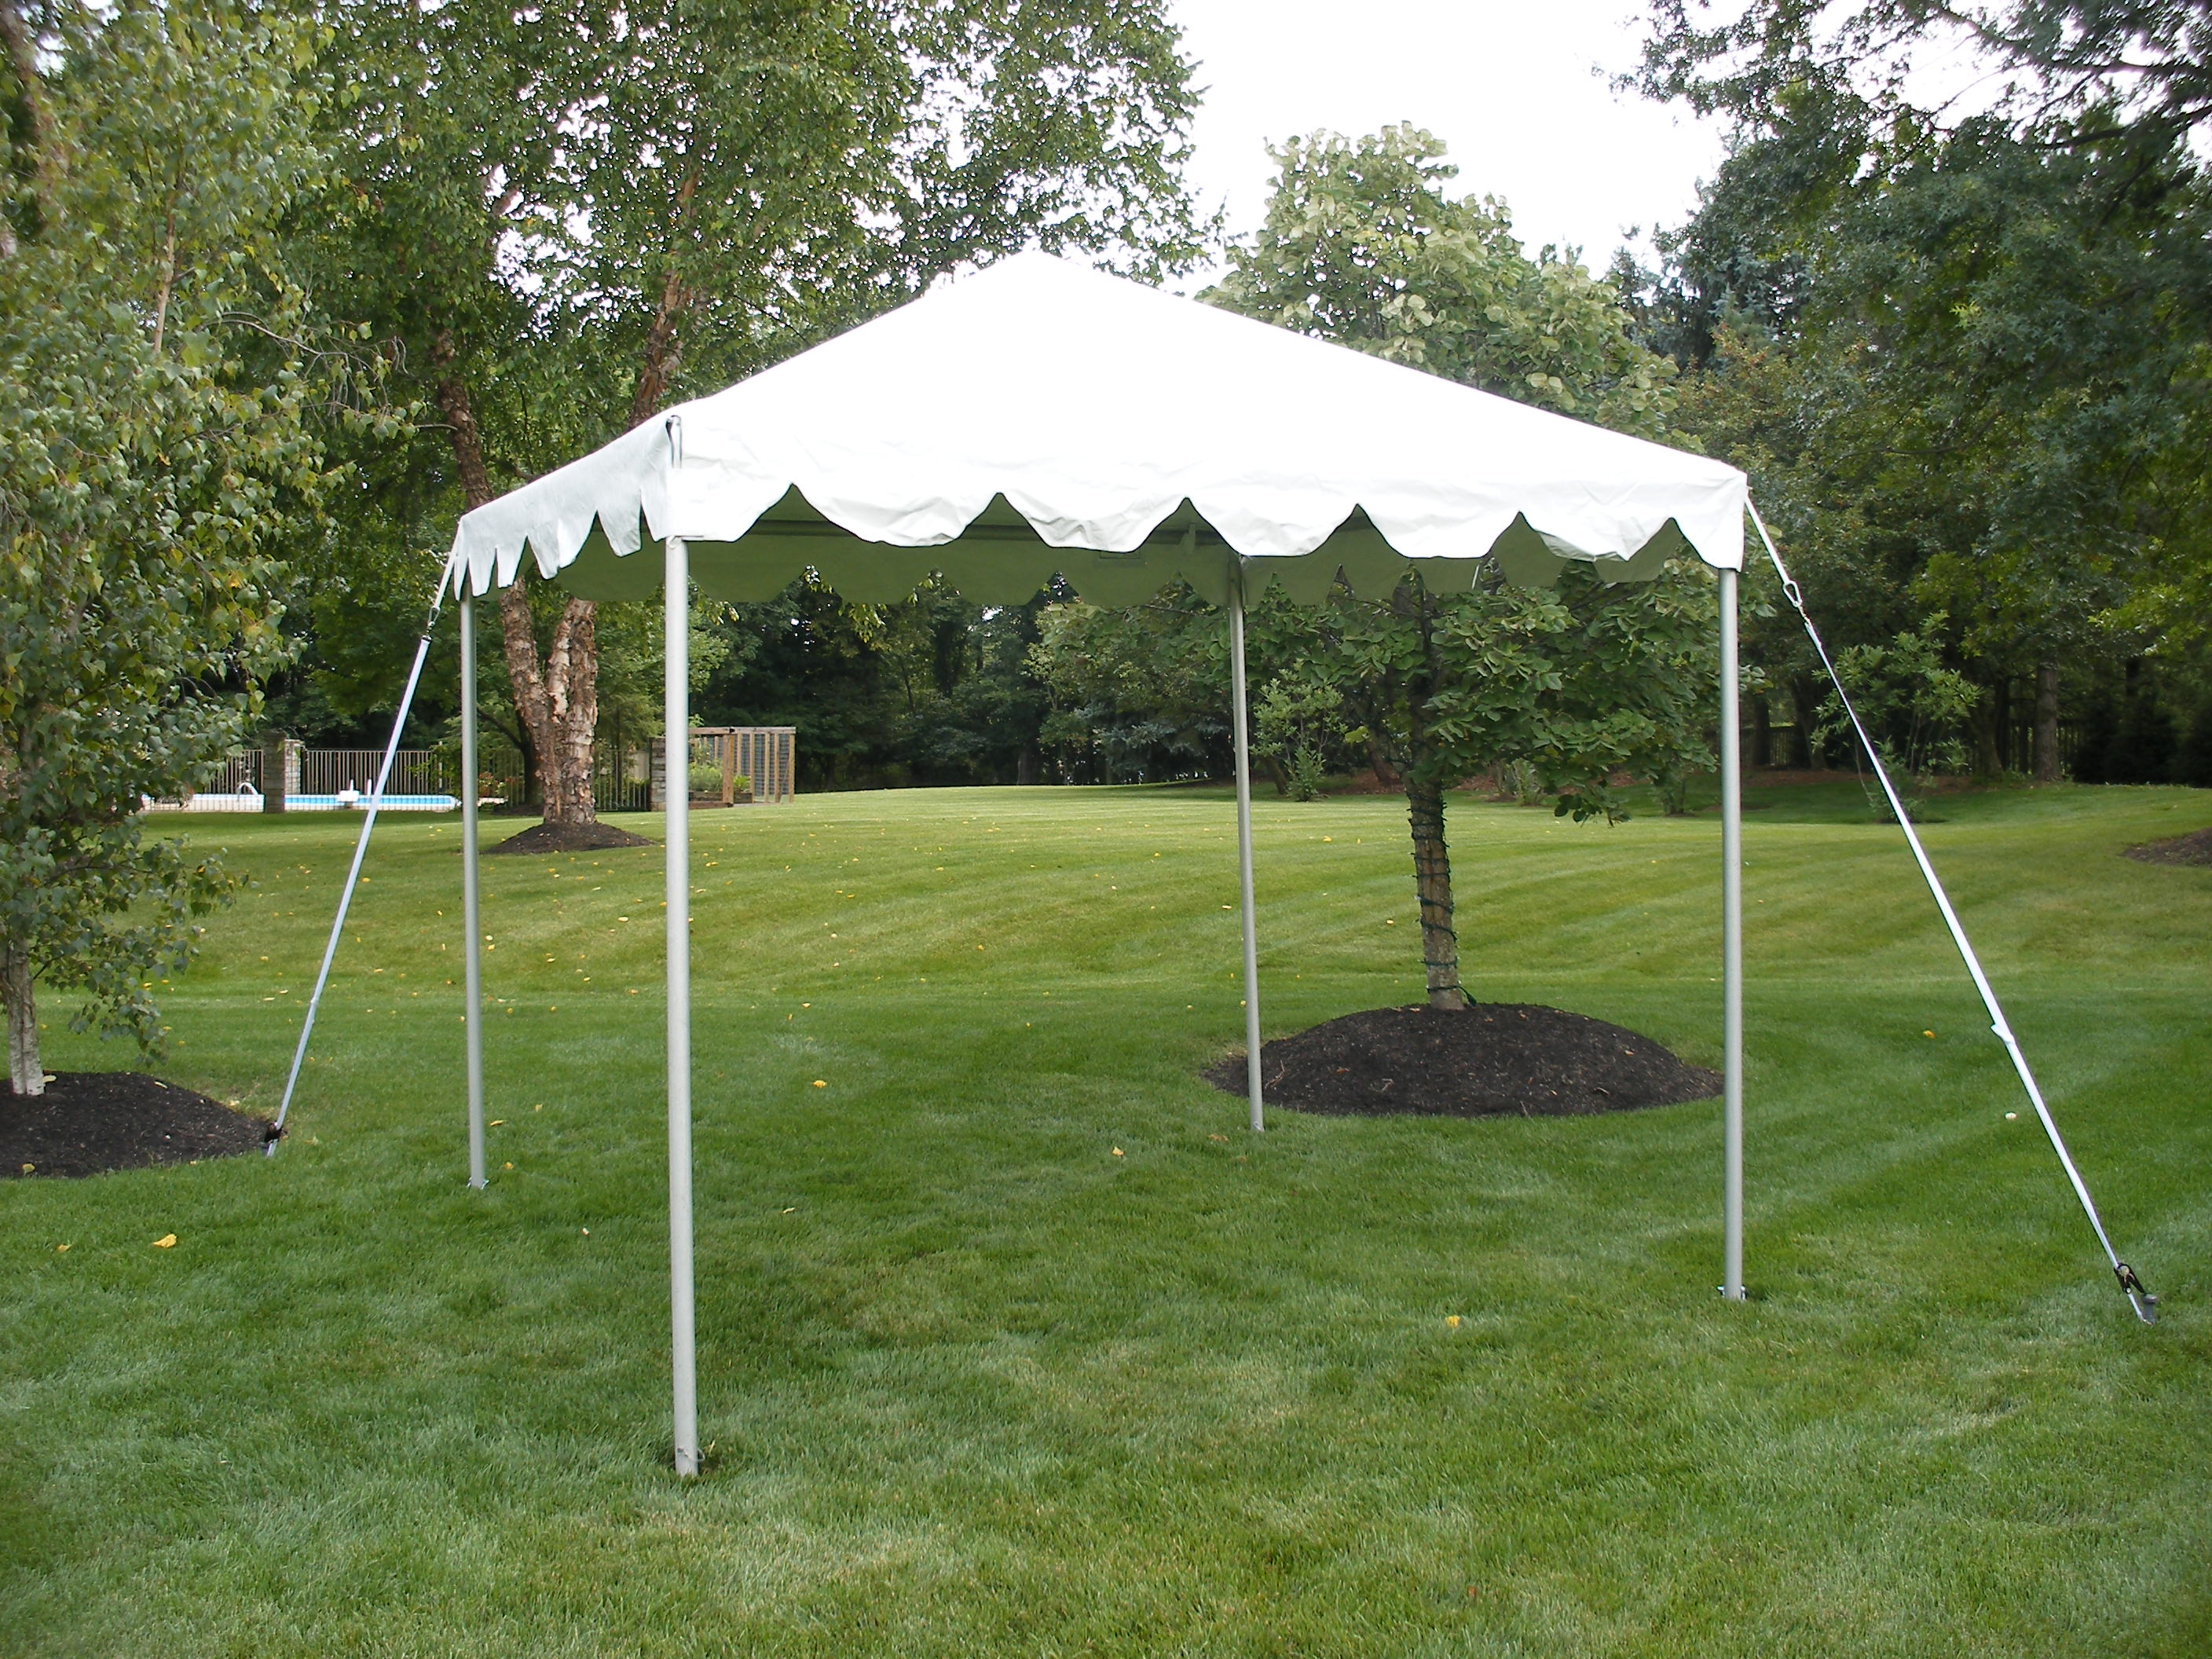 10 x 10 Frame Tent is ideal as a flea market booth, food or cake tent